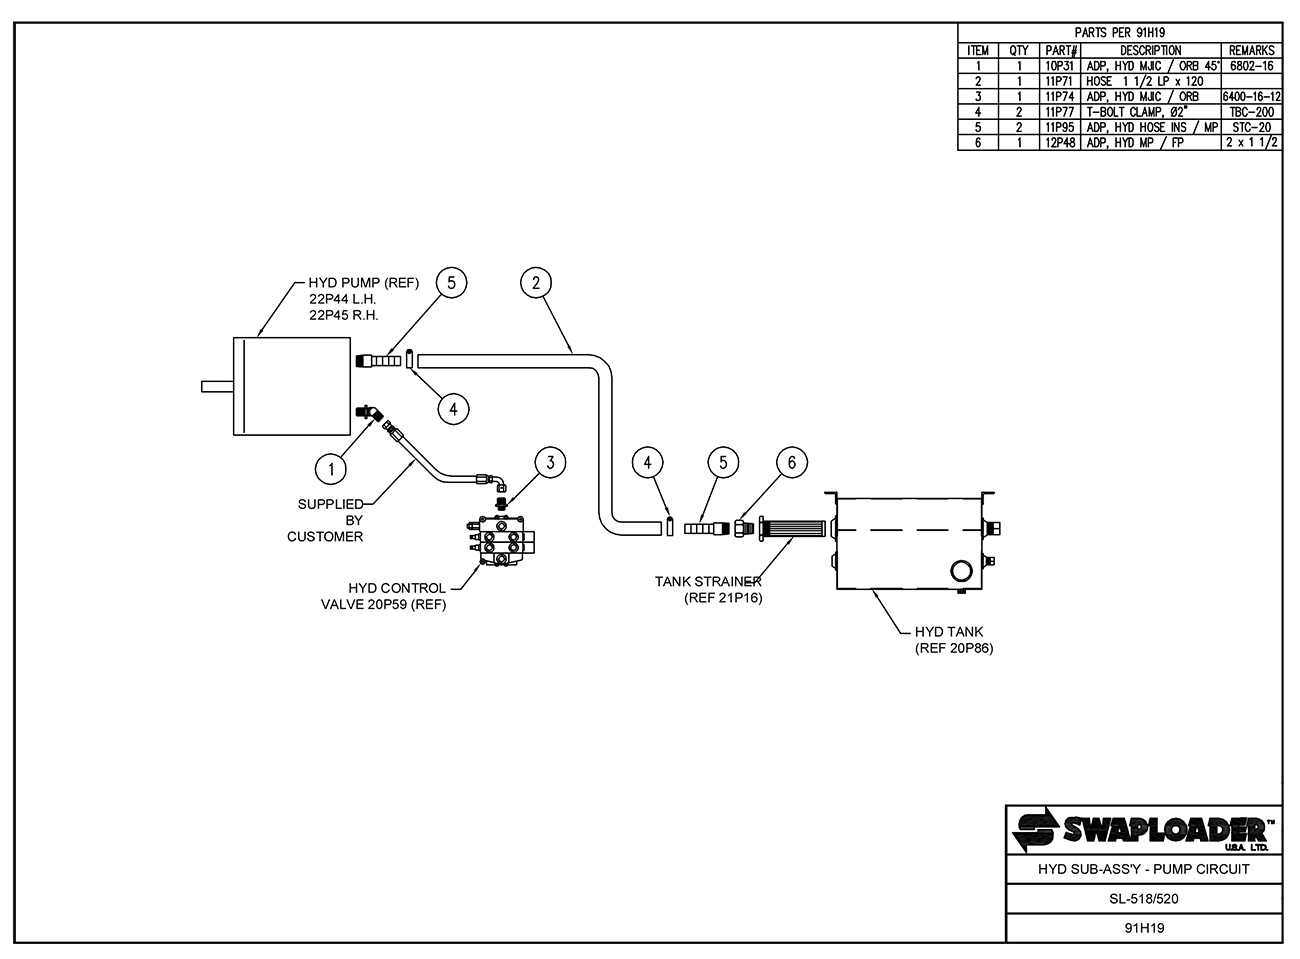 SL-518/520 Hydraulic Sub-Assembly Pump Circuit Diagram